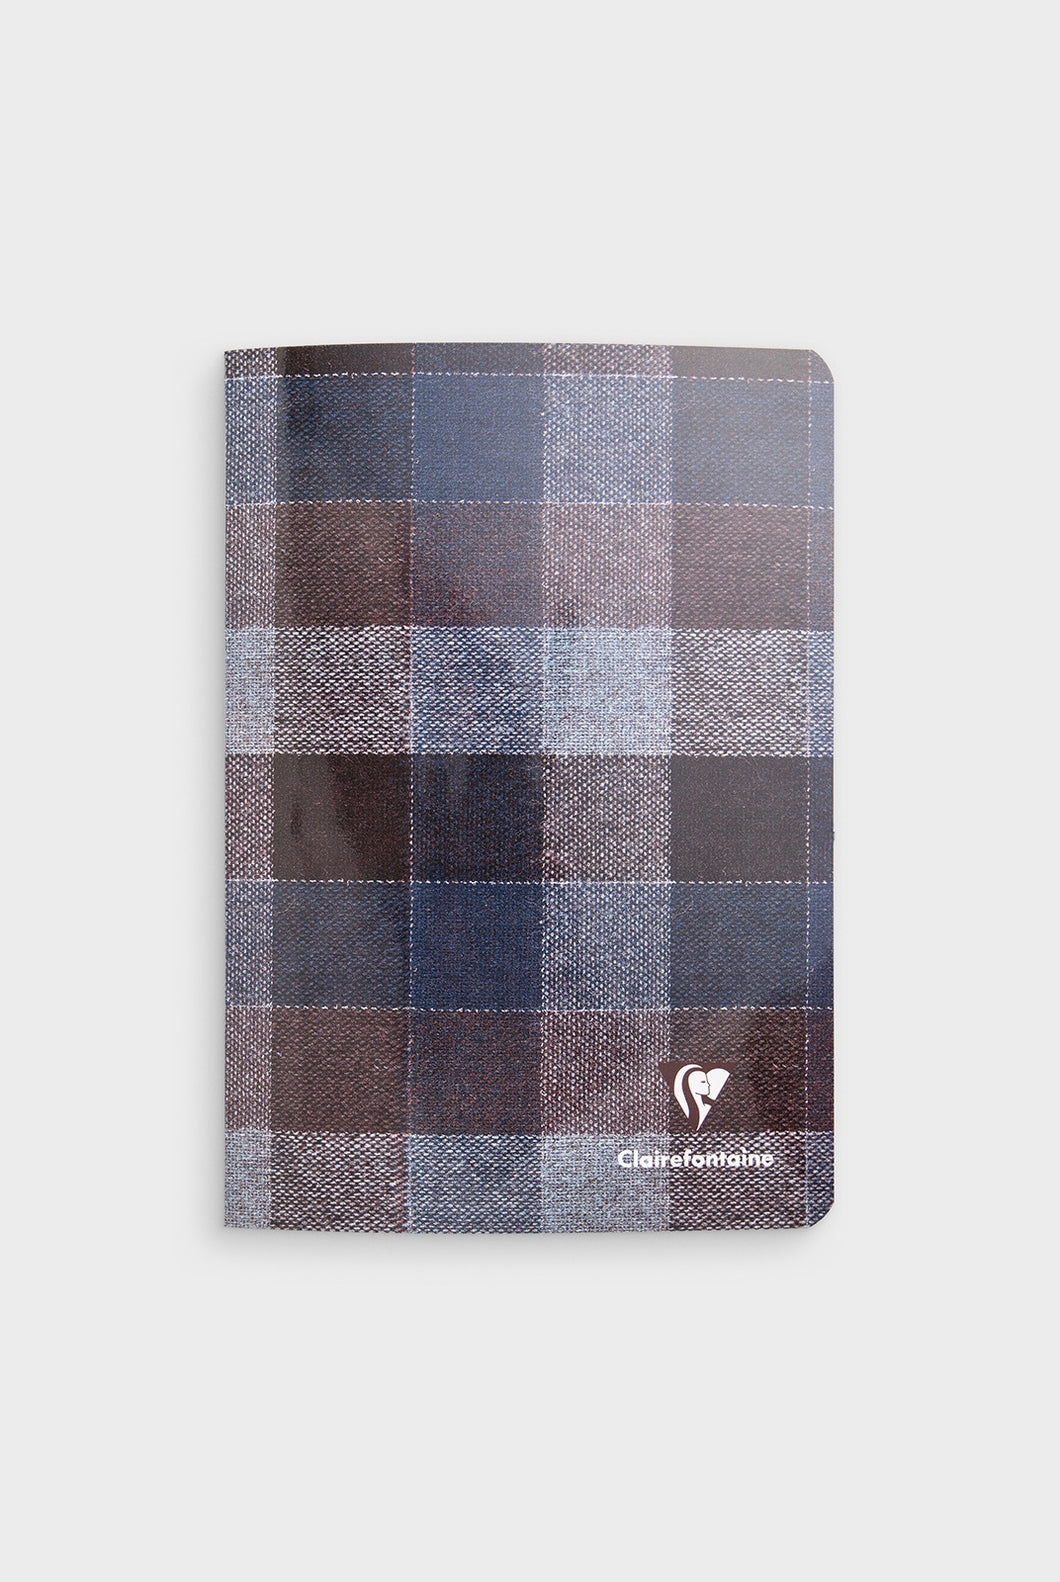 Clairefontaine - Madras Staplebound Notebook - Ruled - A5 - Blue & Brown